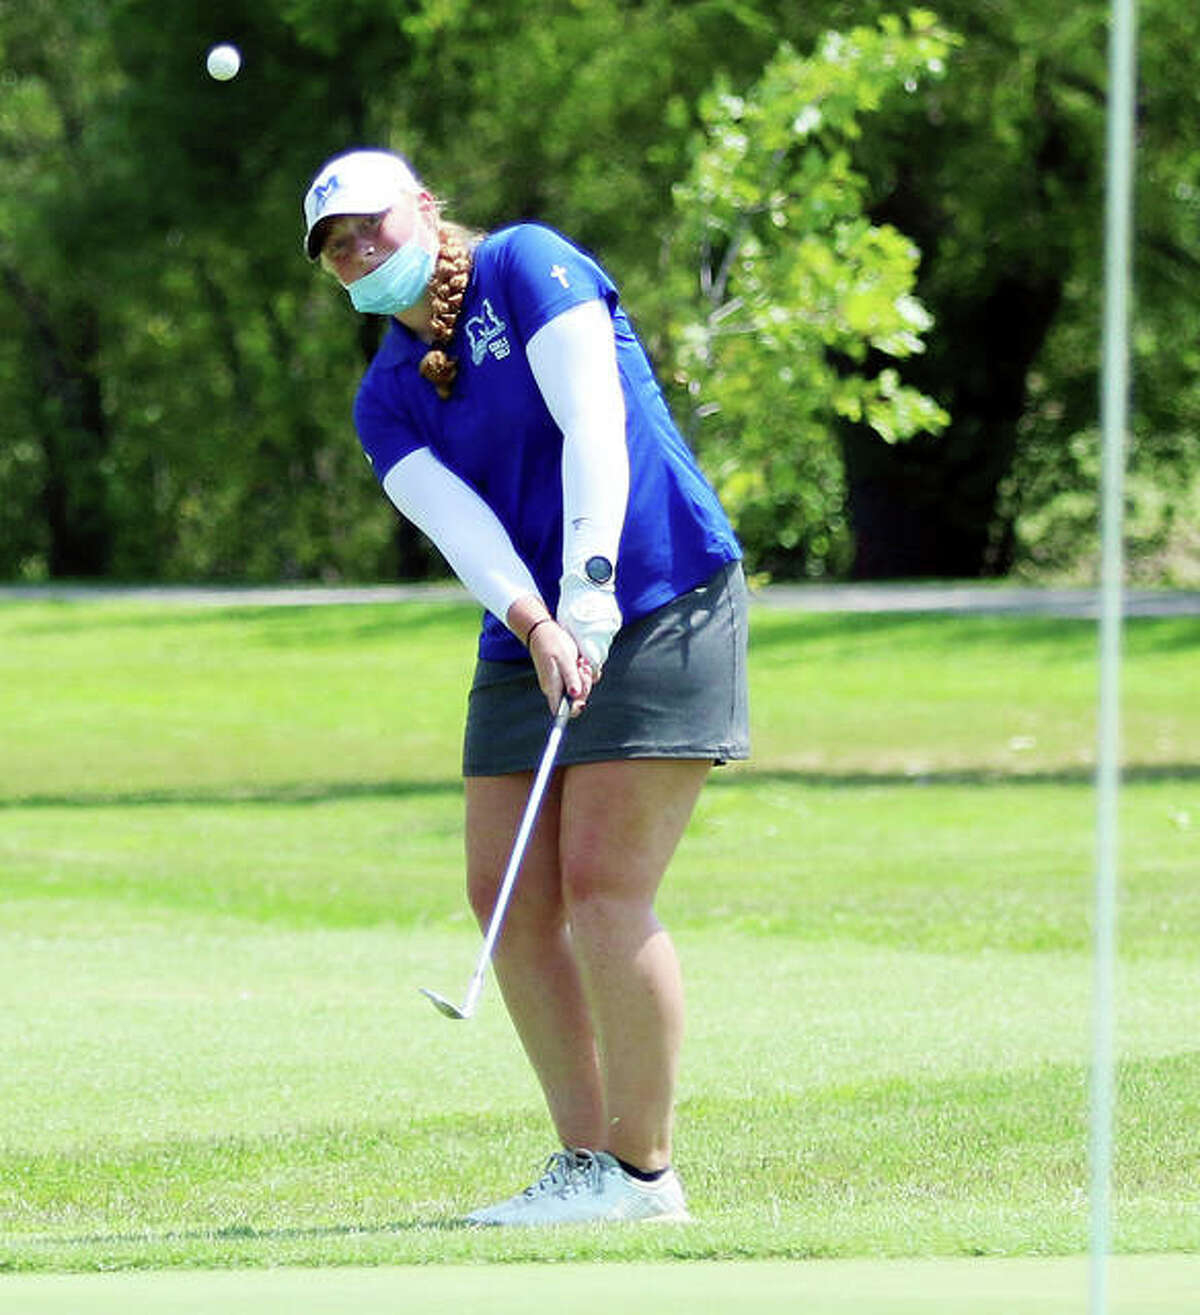 Marquette Catholic junior Gracie Piar chips onto the green at hole No. 7 on Tuesday at the Madison County girls golf tournament at The Legacy in Granite City. Piar shot 1-over par 72 to win overall medalist honors for the first time.